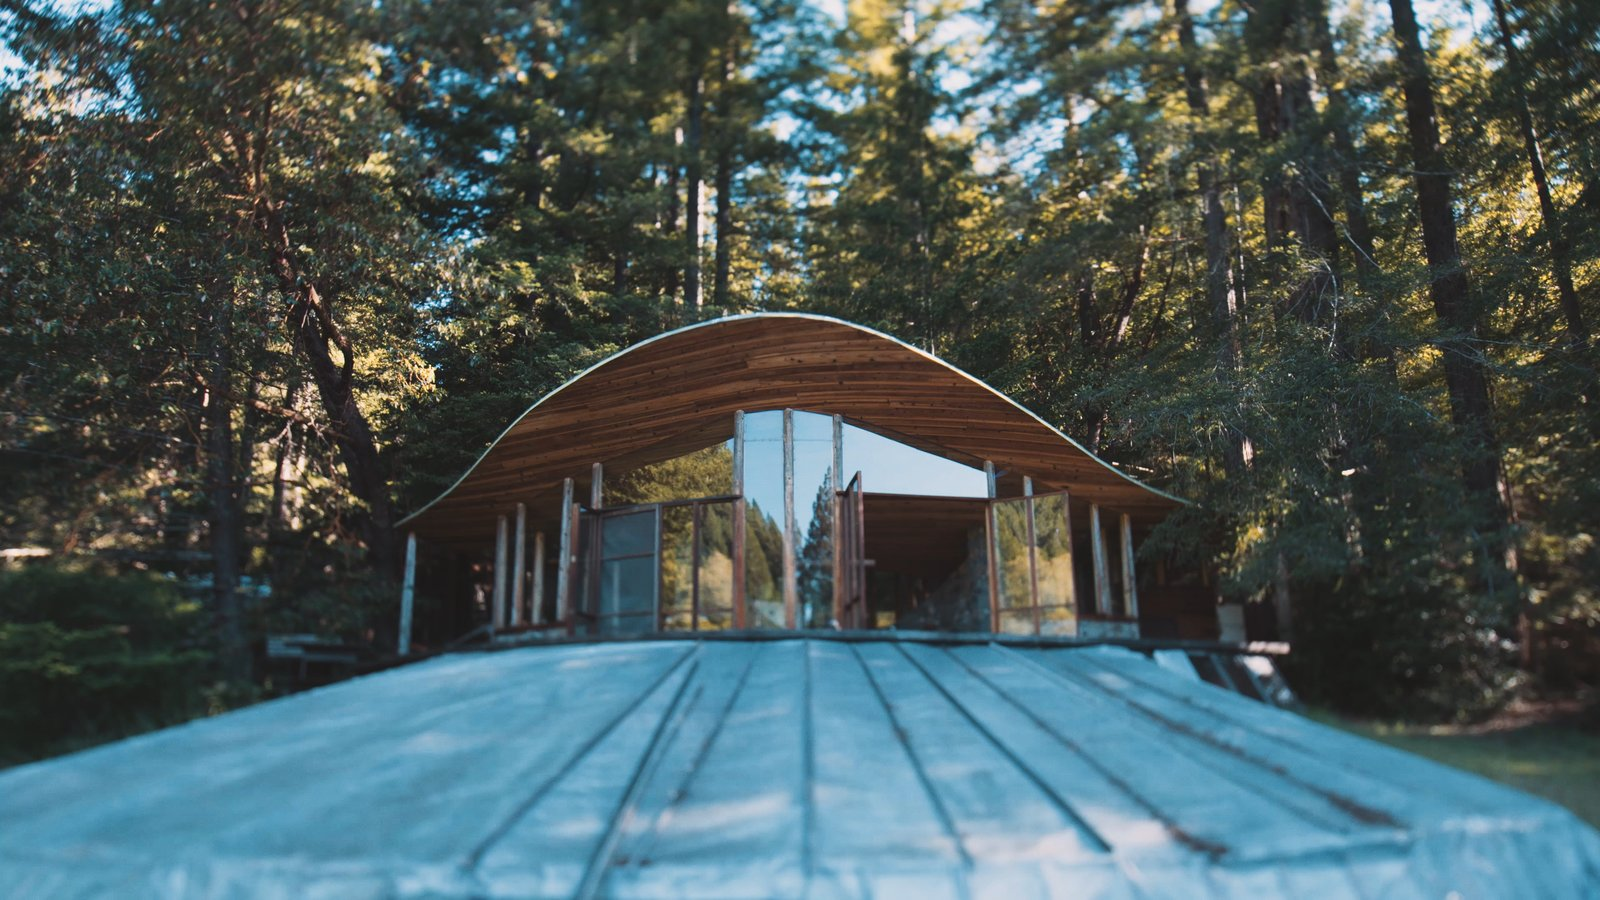 The Parabolic Glass House in Northern California Is One Architect's Utopia in the Redwoods